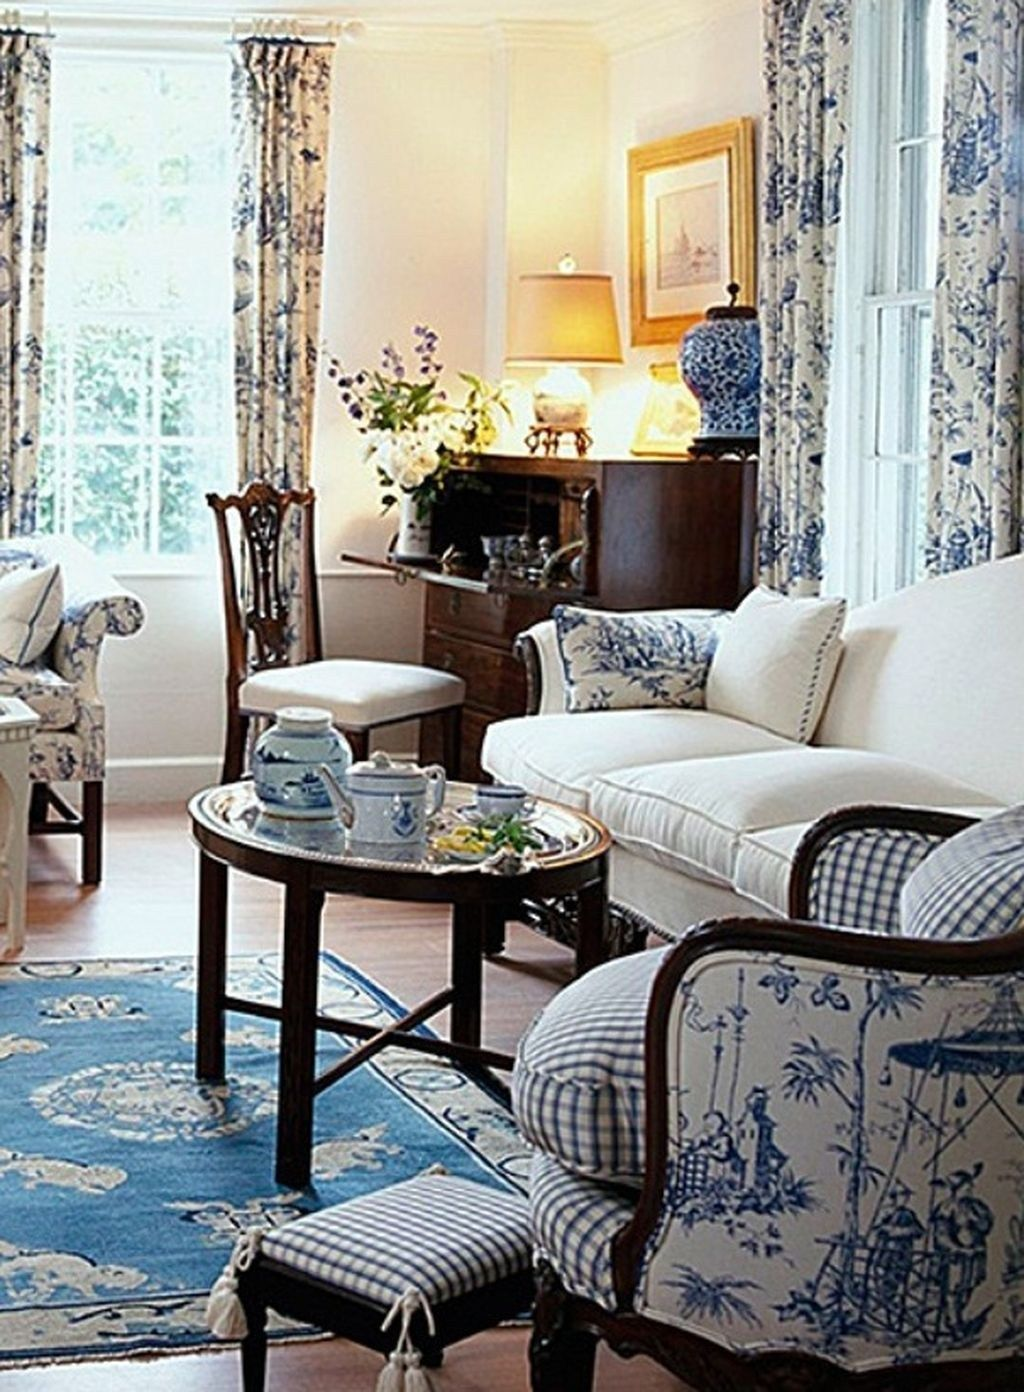 51 Cute French Style Living Room For New Home Style Roundecor French Country Living Room French Country Decorating Living Room Country Cottage Living Room